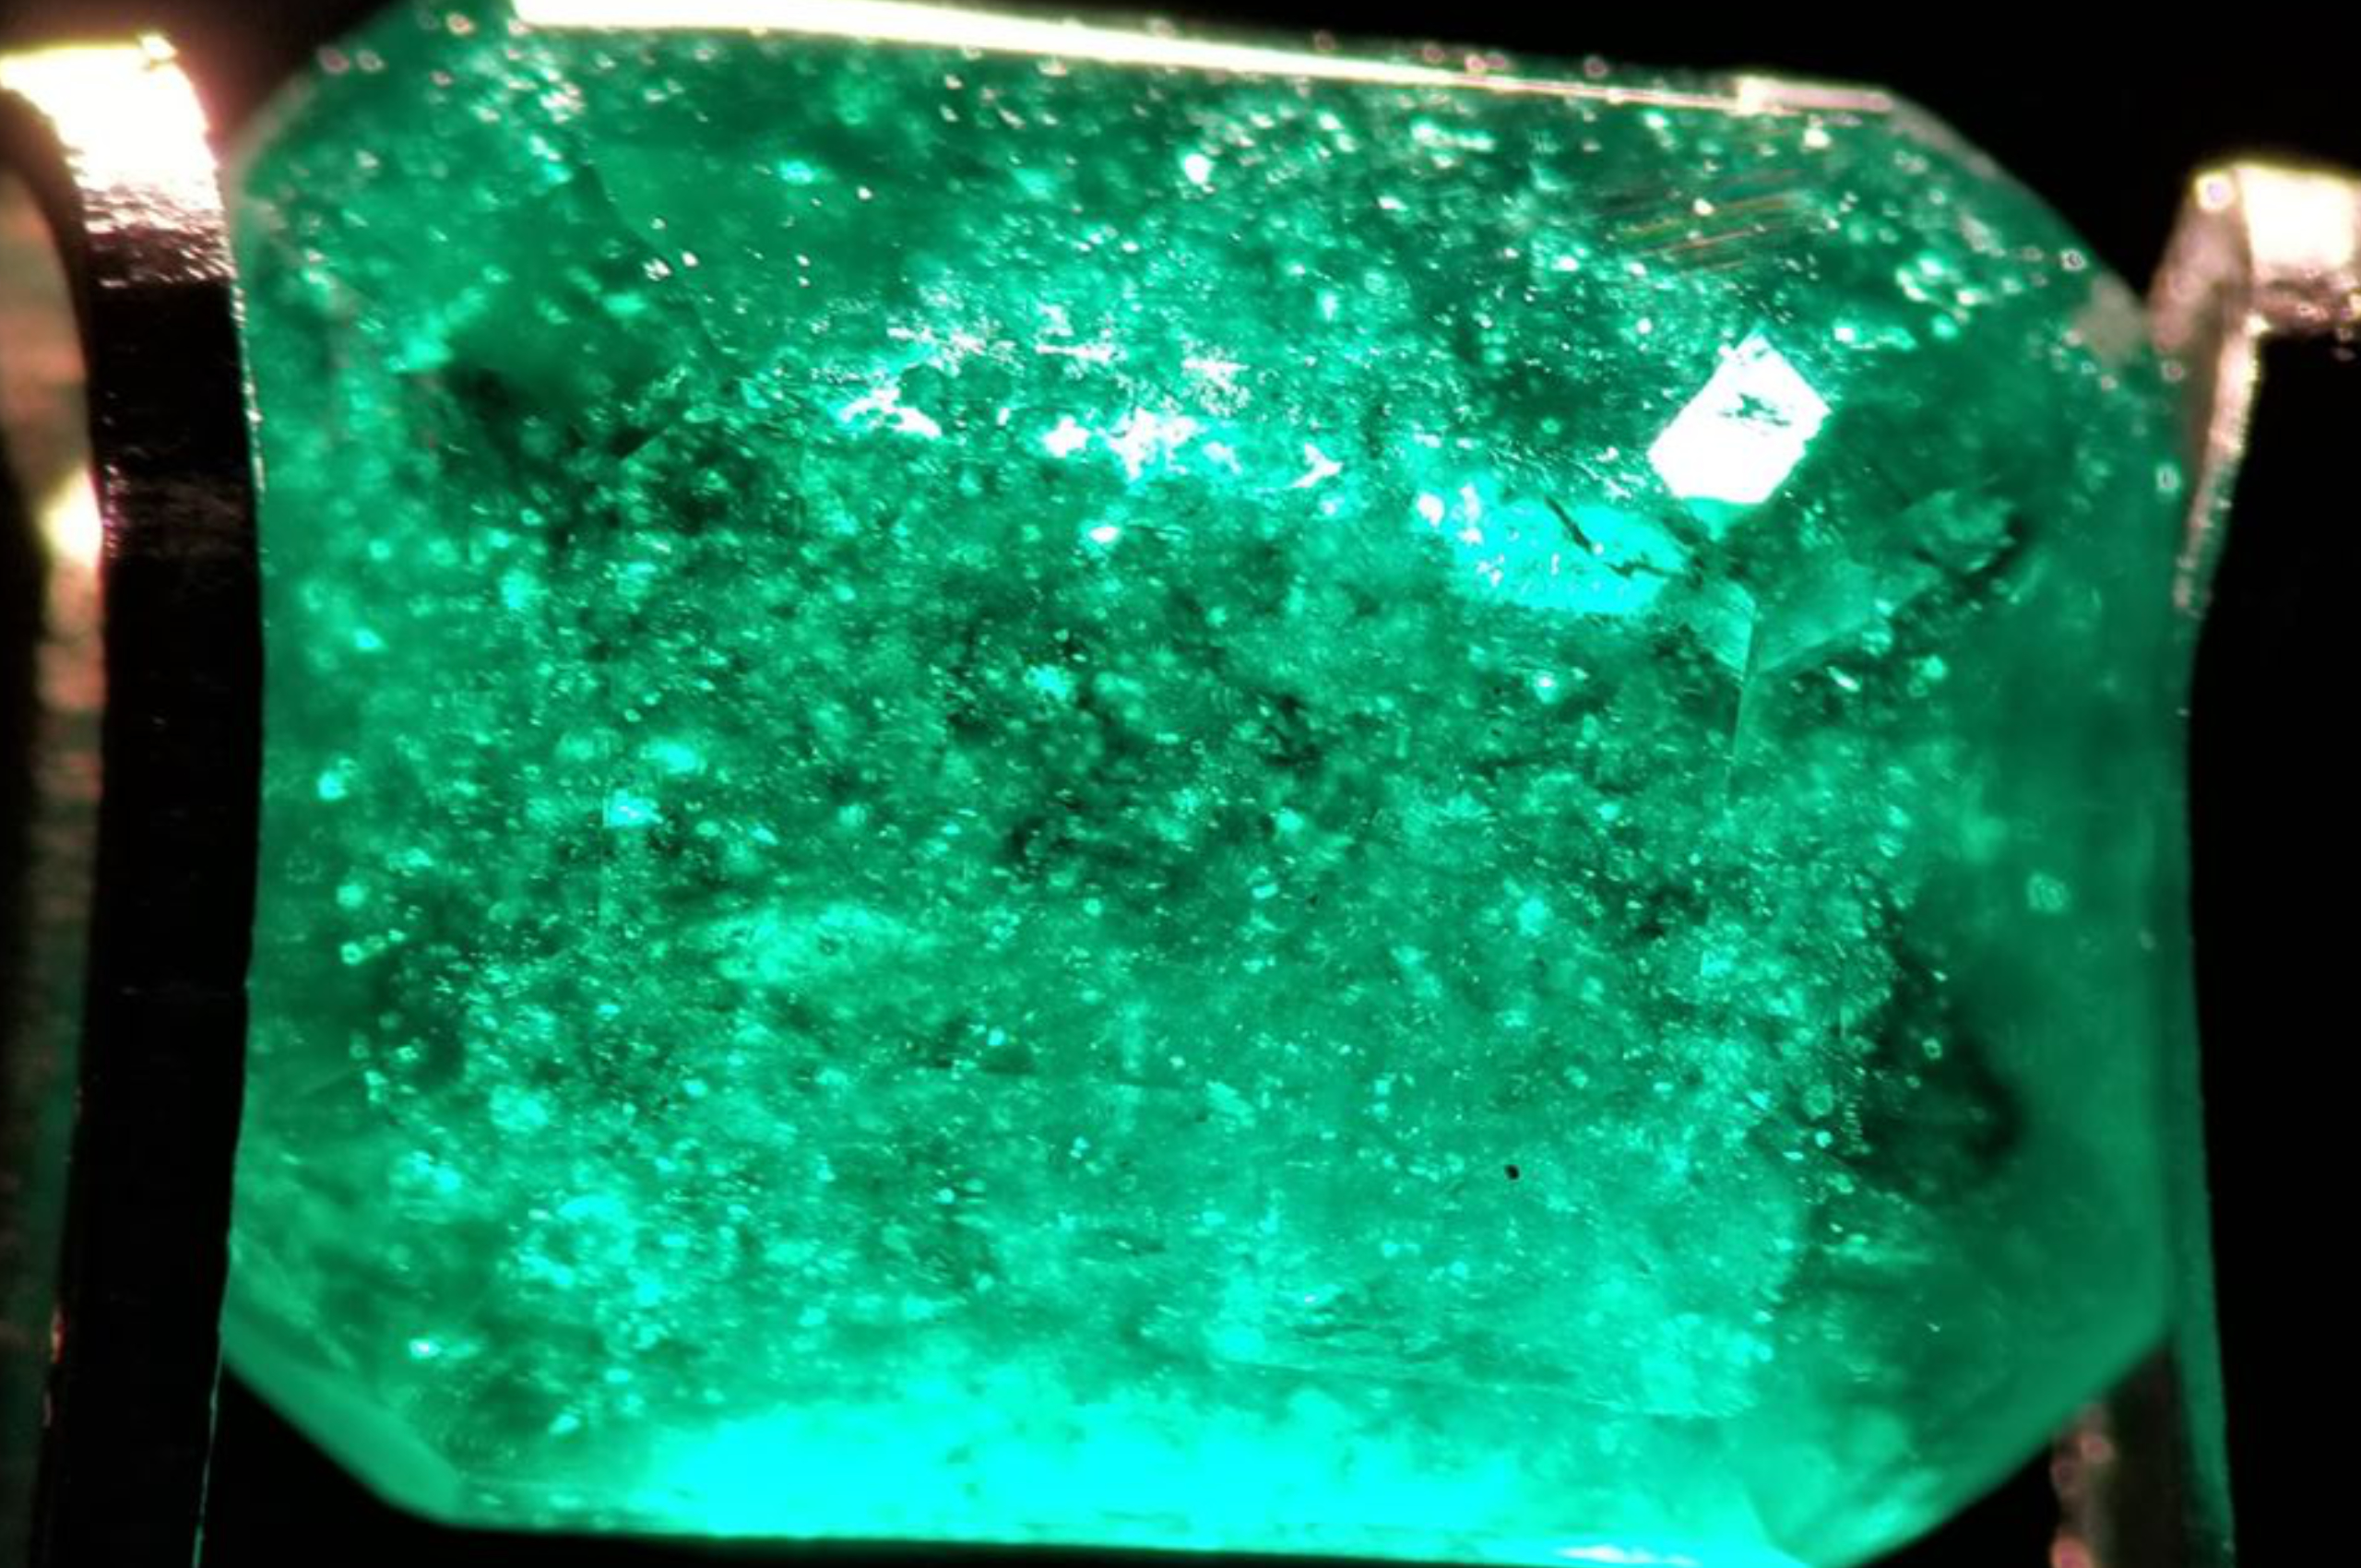 Emerald from Swat peppered with minute and colorless mineral inclusions along with countless tiny flakes, which appear to be mica.Photo by Fahad Abbas Sheikh